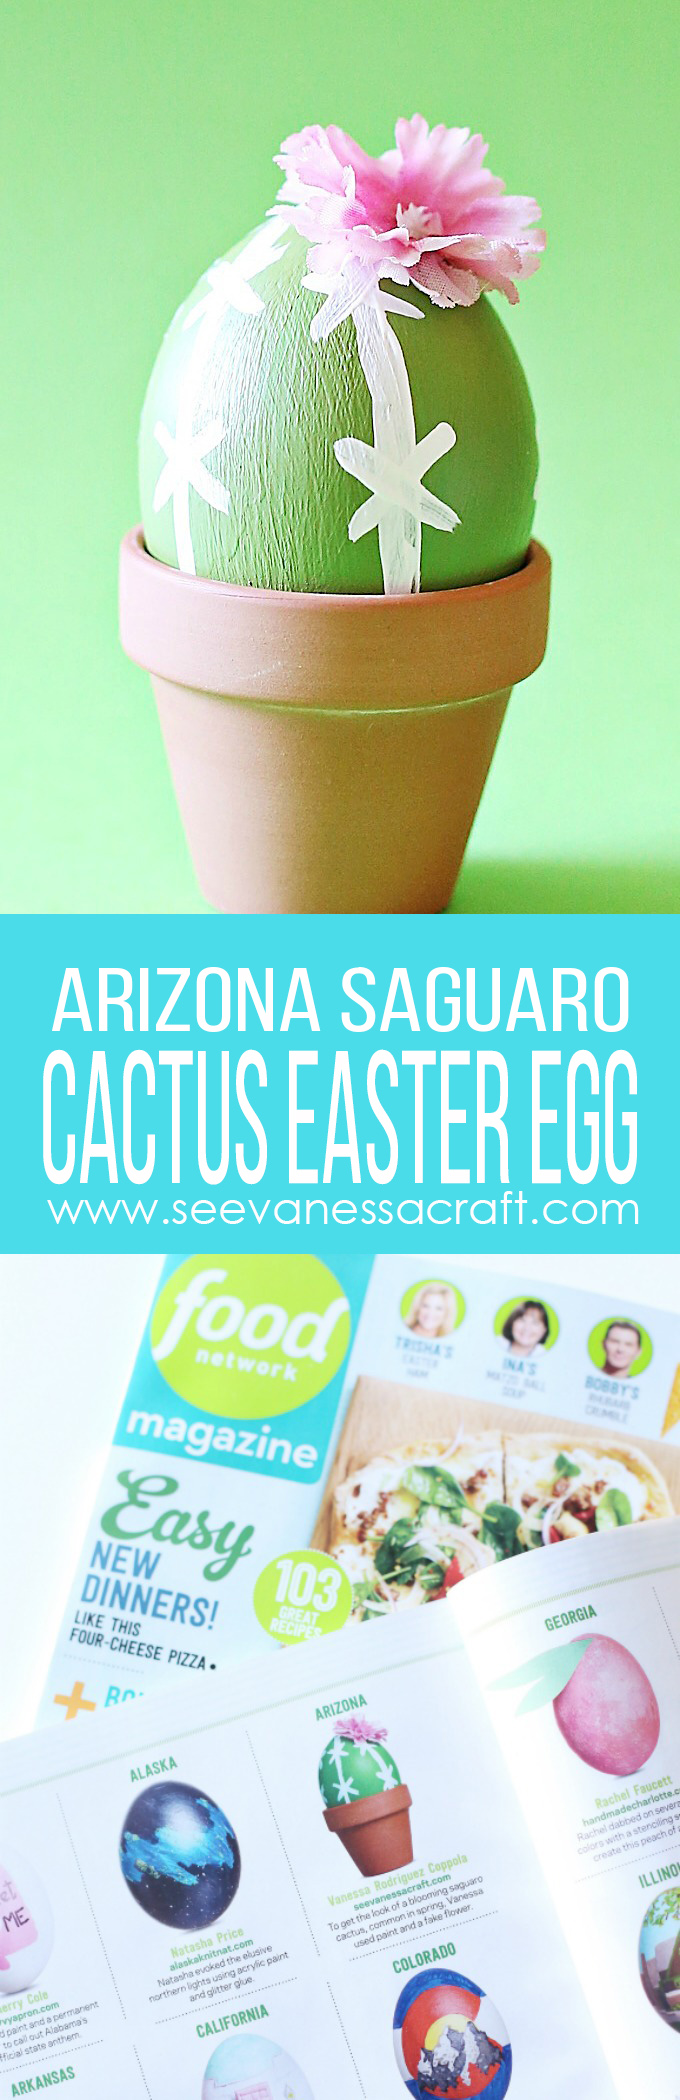 Arizona Cactus Easter Egg As Seen In Food Network Magazine copy